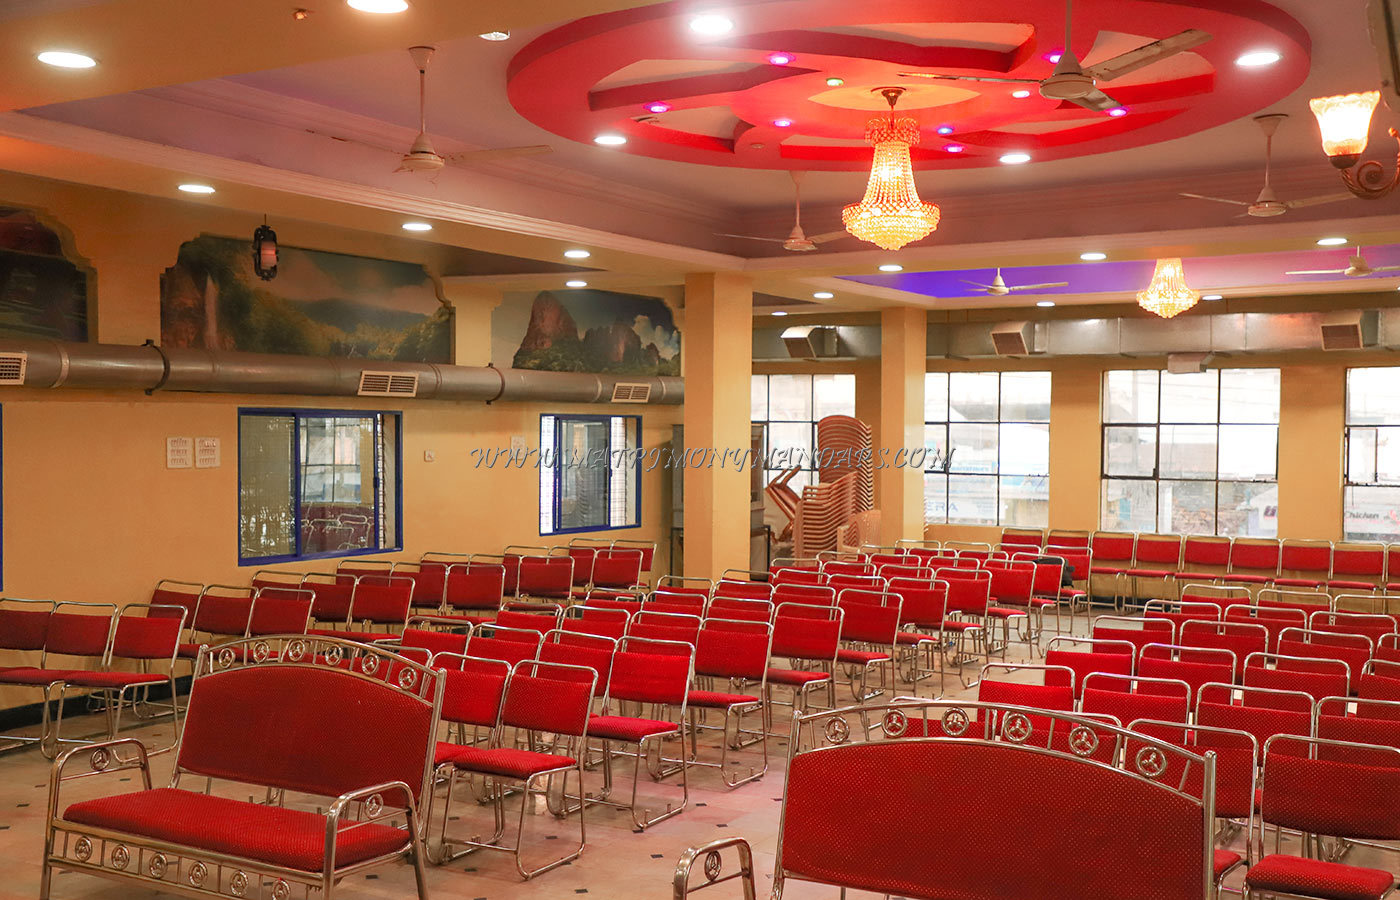 Find the availability of the President Garden Function Hall in Shaikpet, Hyderabad and avail special offers